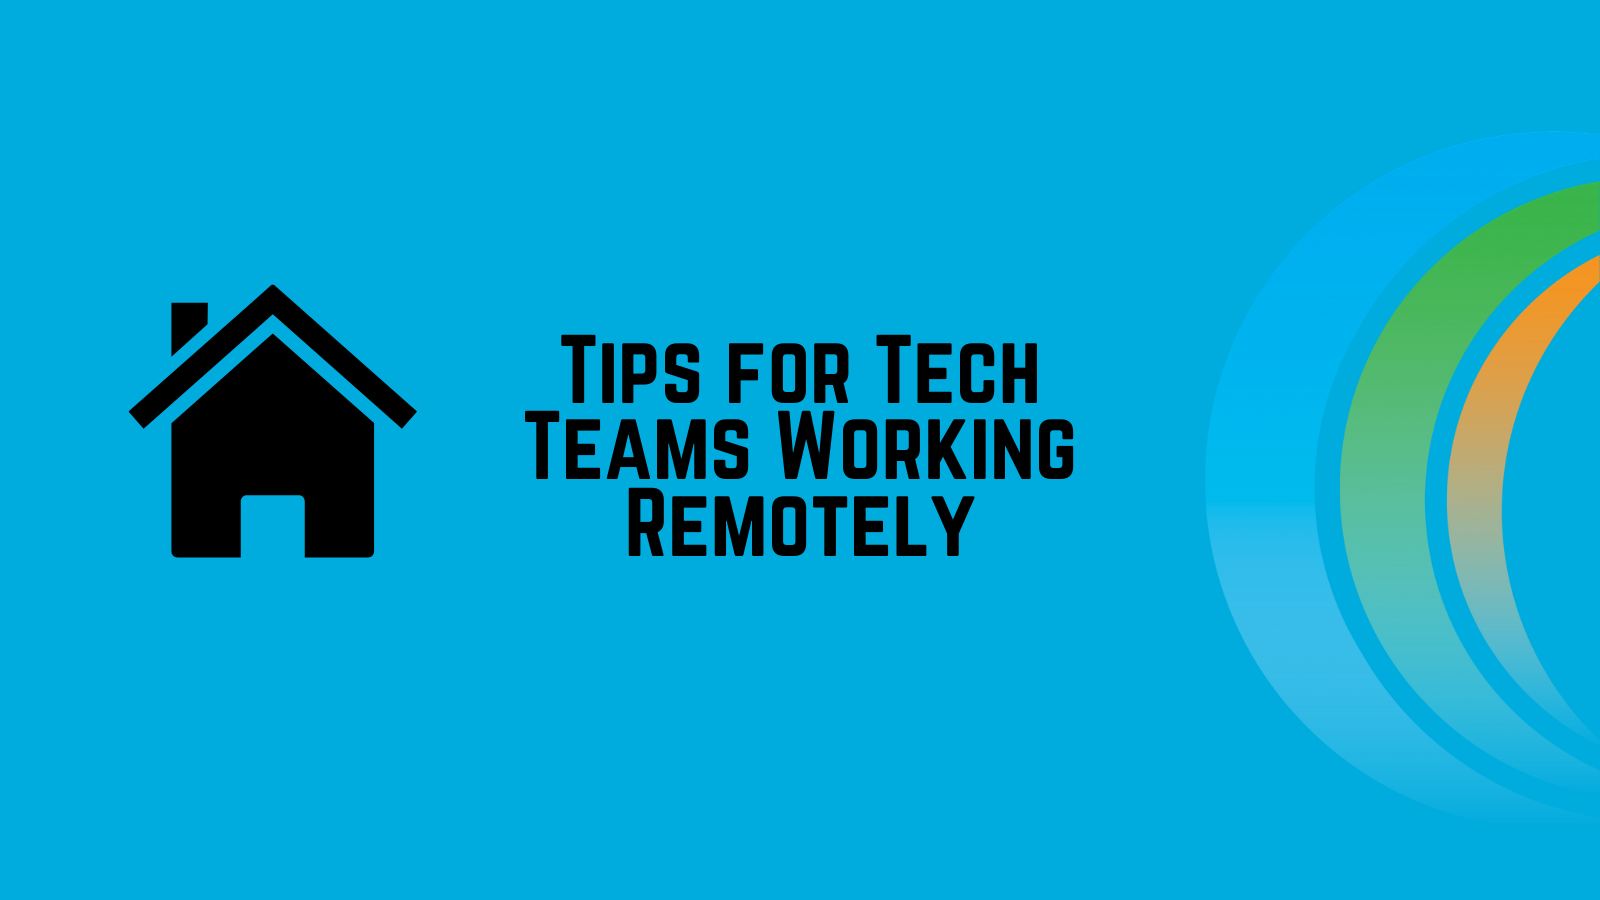 Tips for Tech Teams Working Remotely